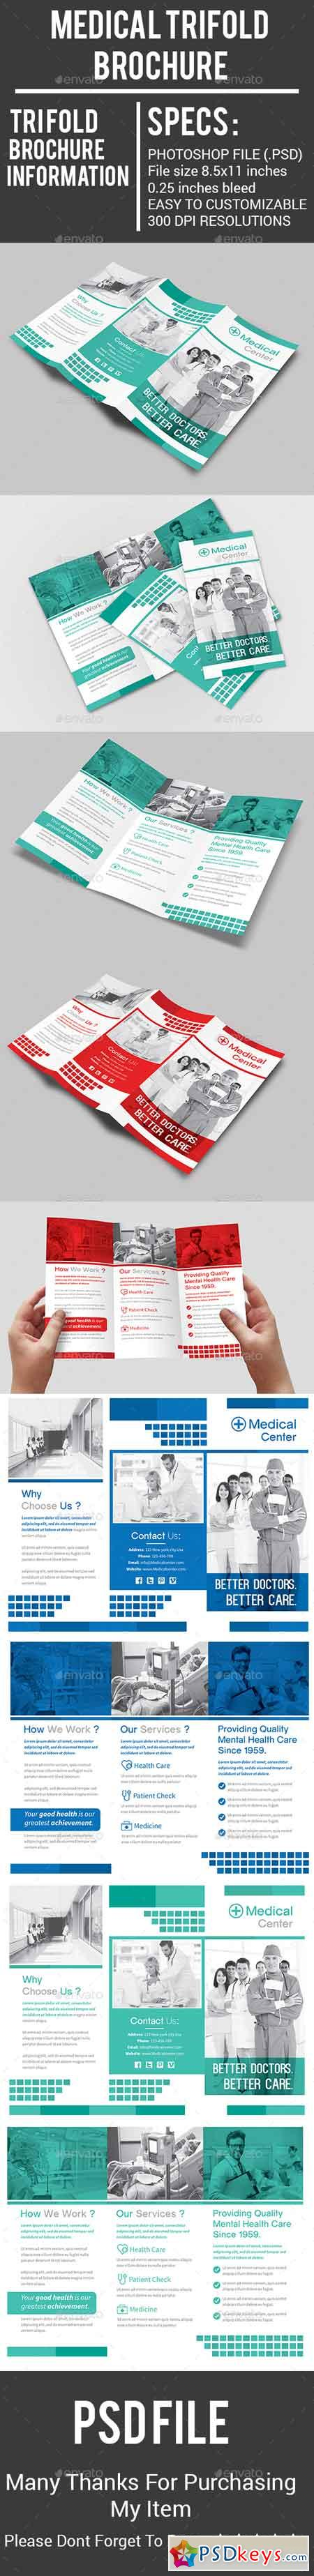 Medical Trifold Brochure 20403318